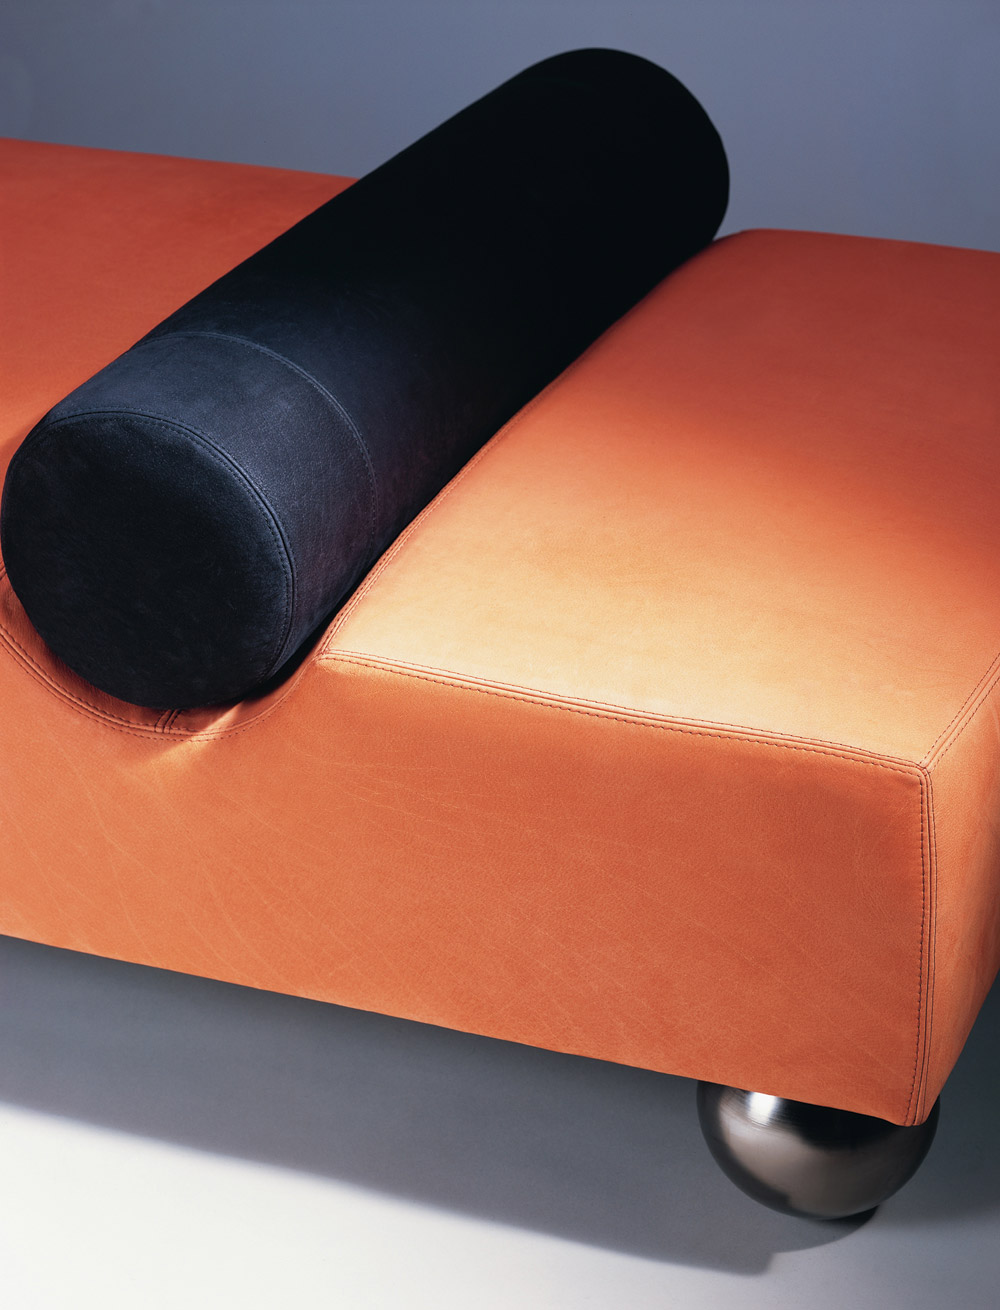 Custom furniture design luxury seating meridienne psy orange black leather close up